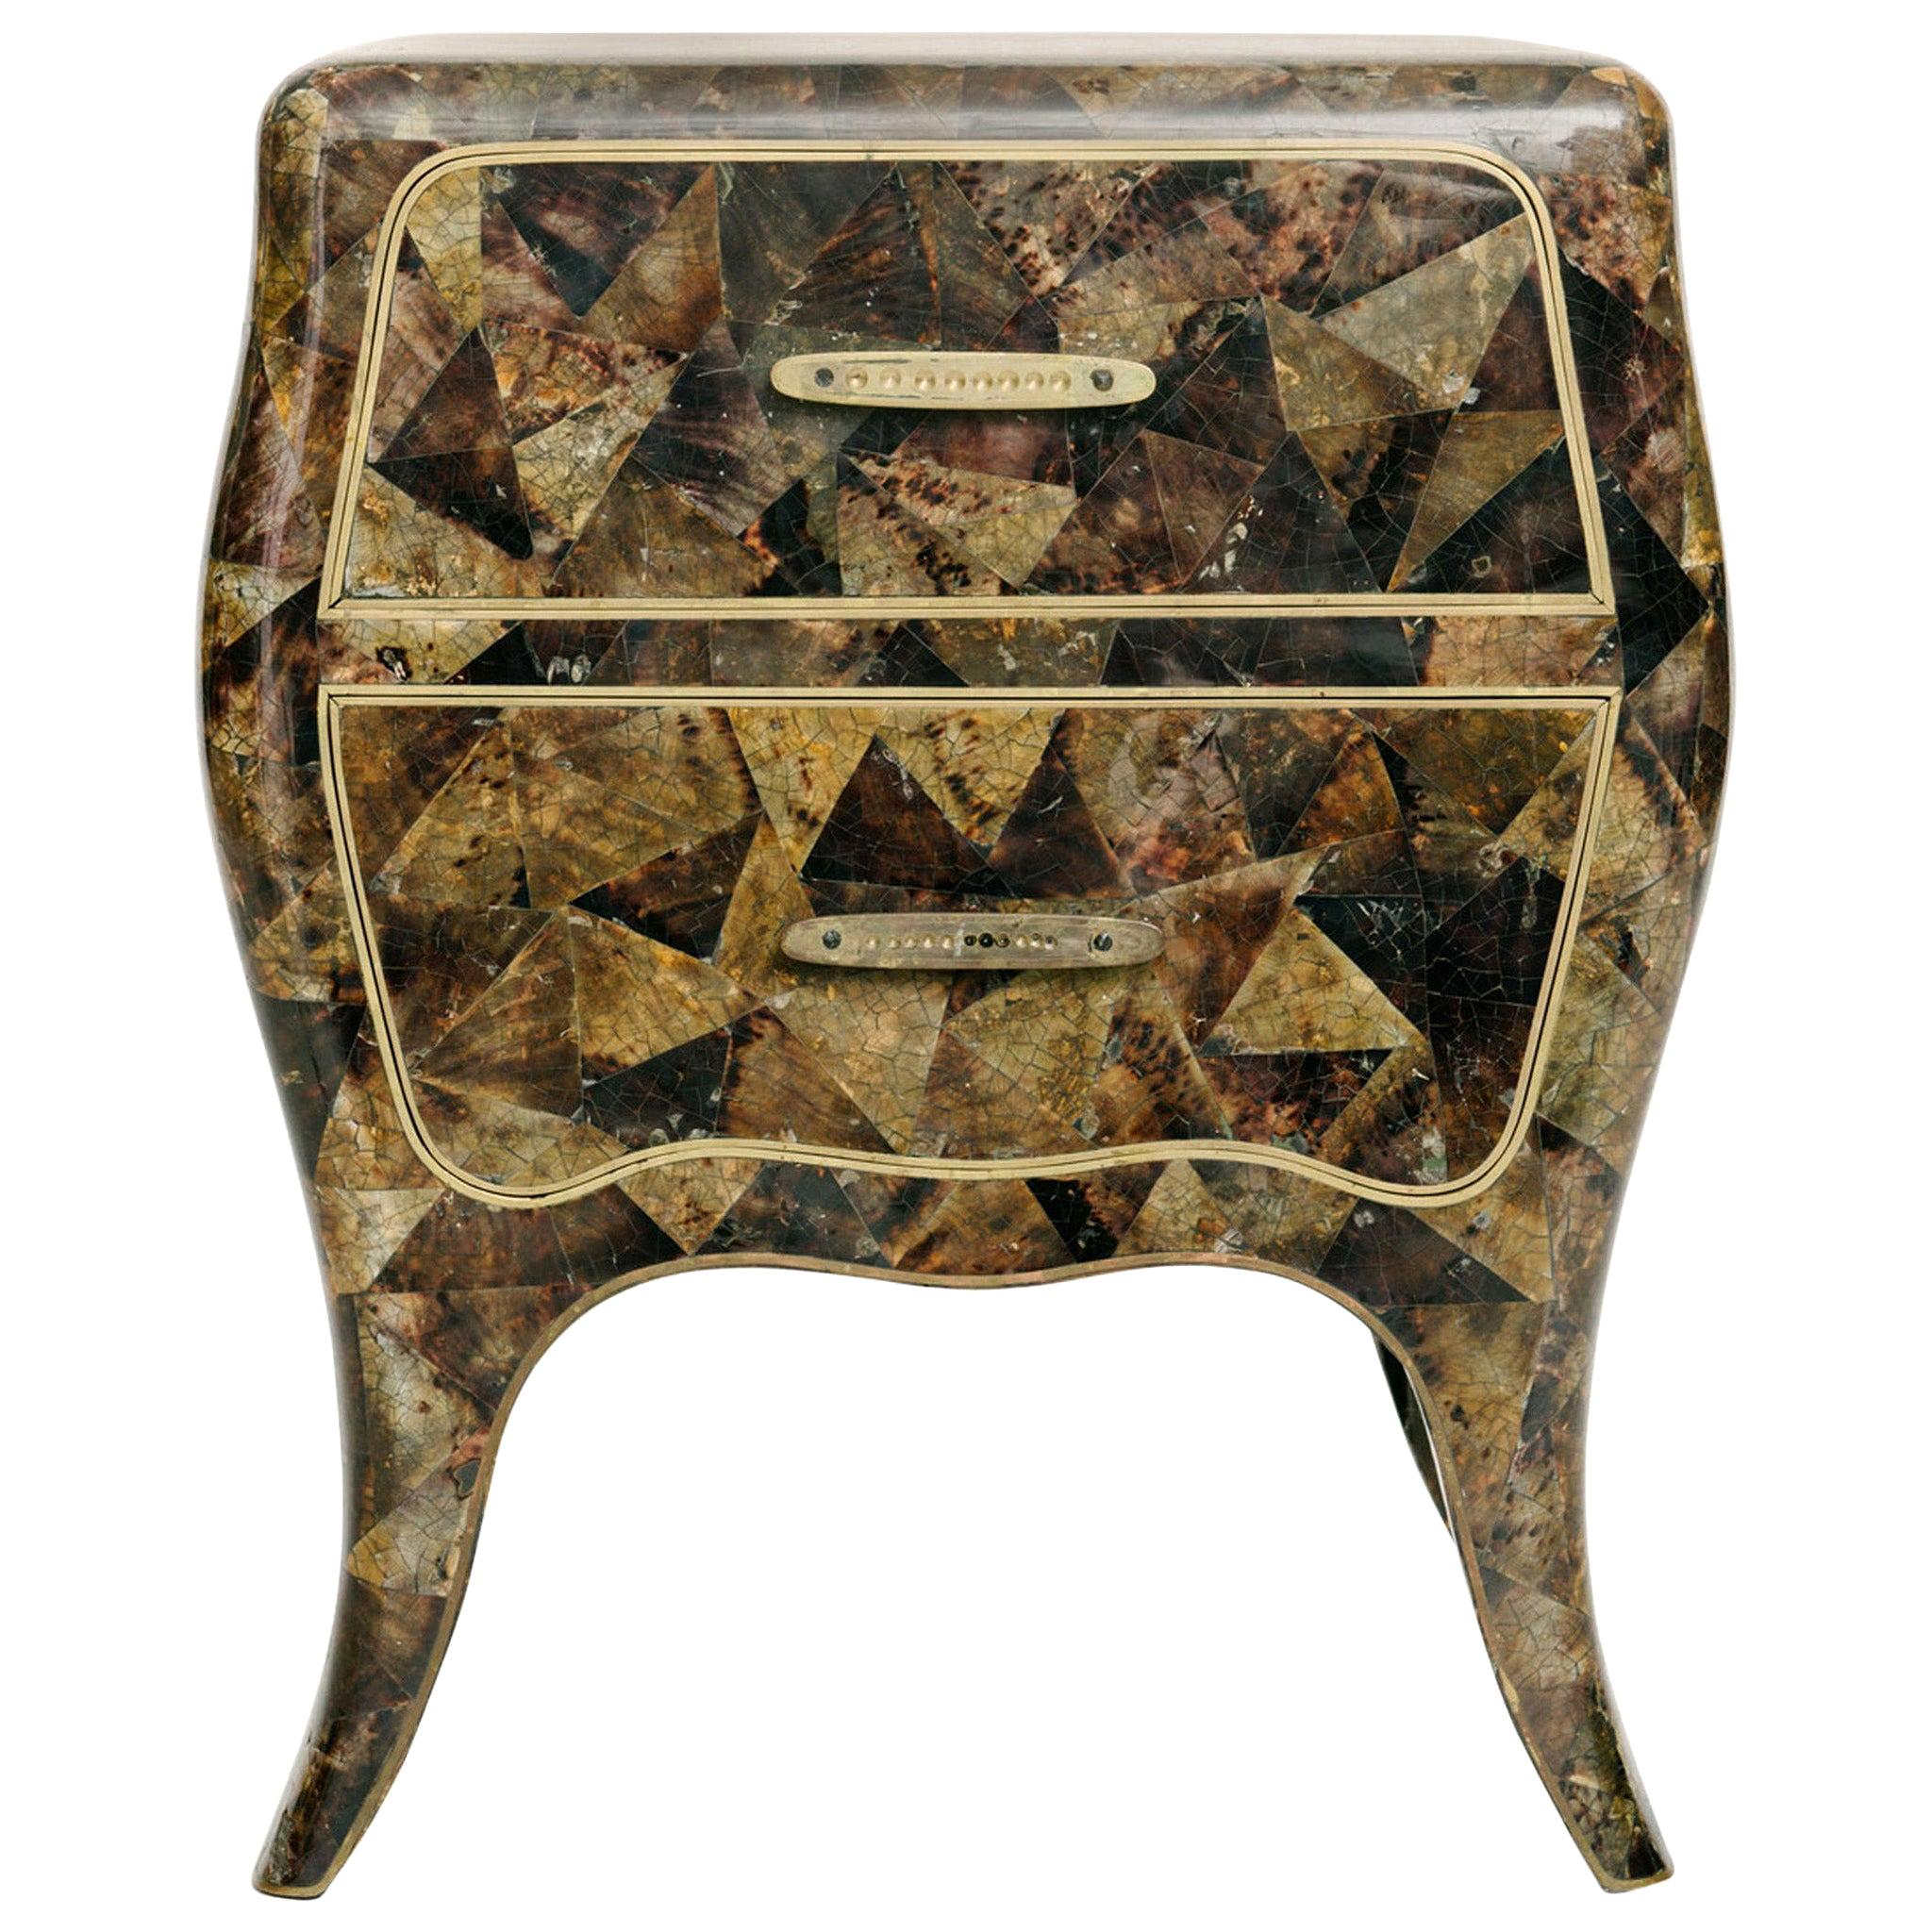 Maitland-Smith Chest of Drawers